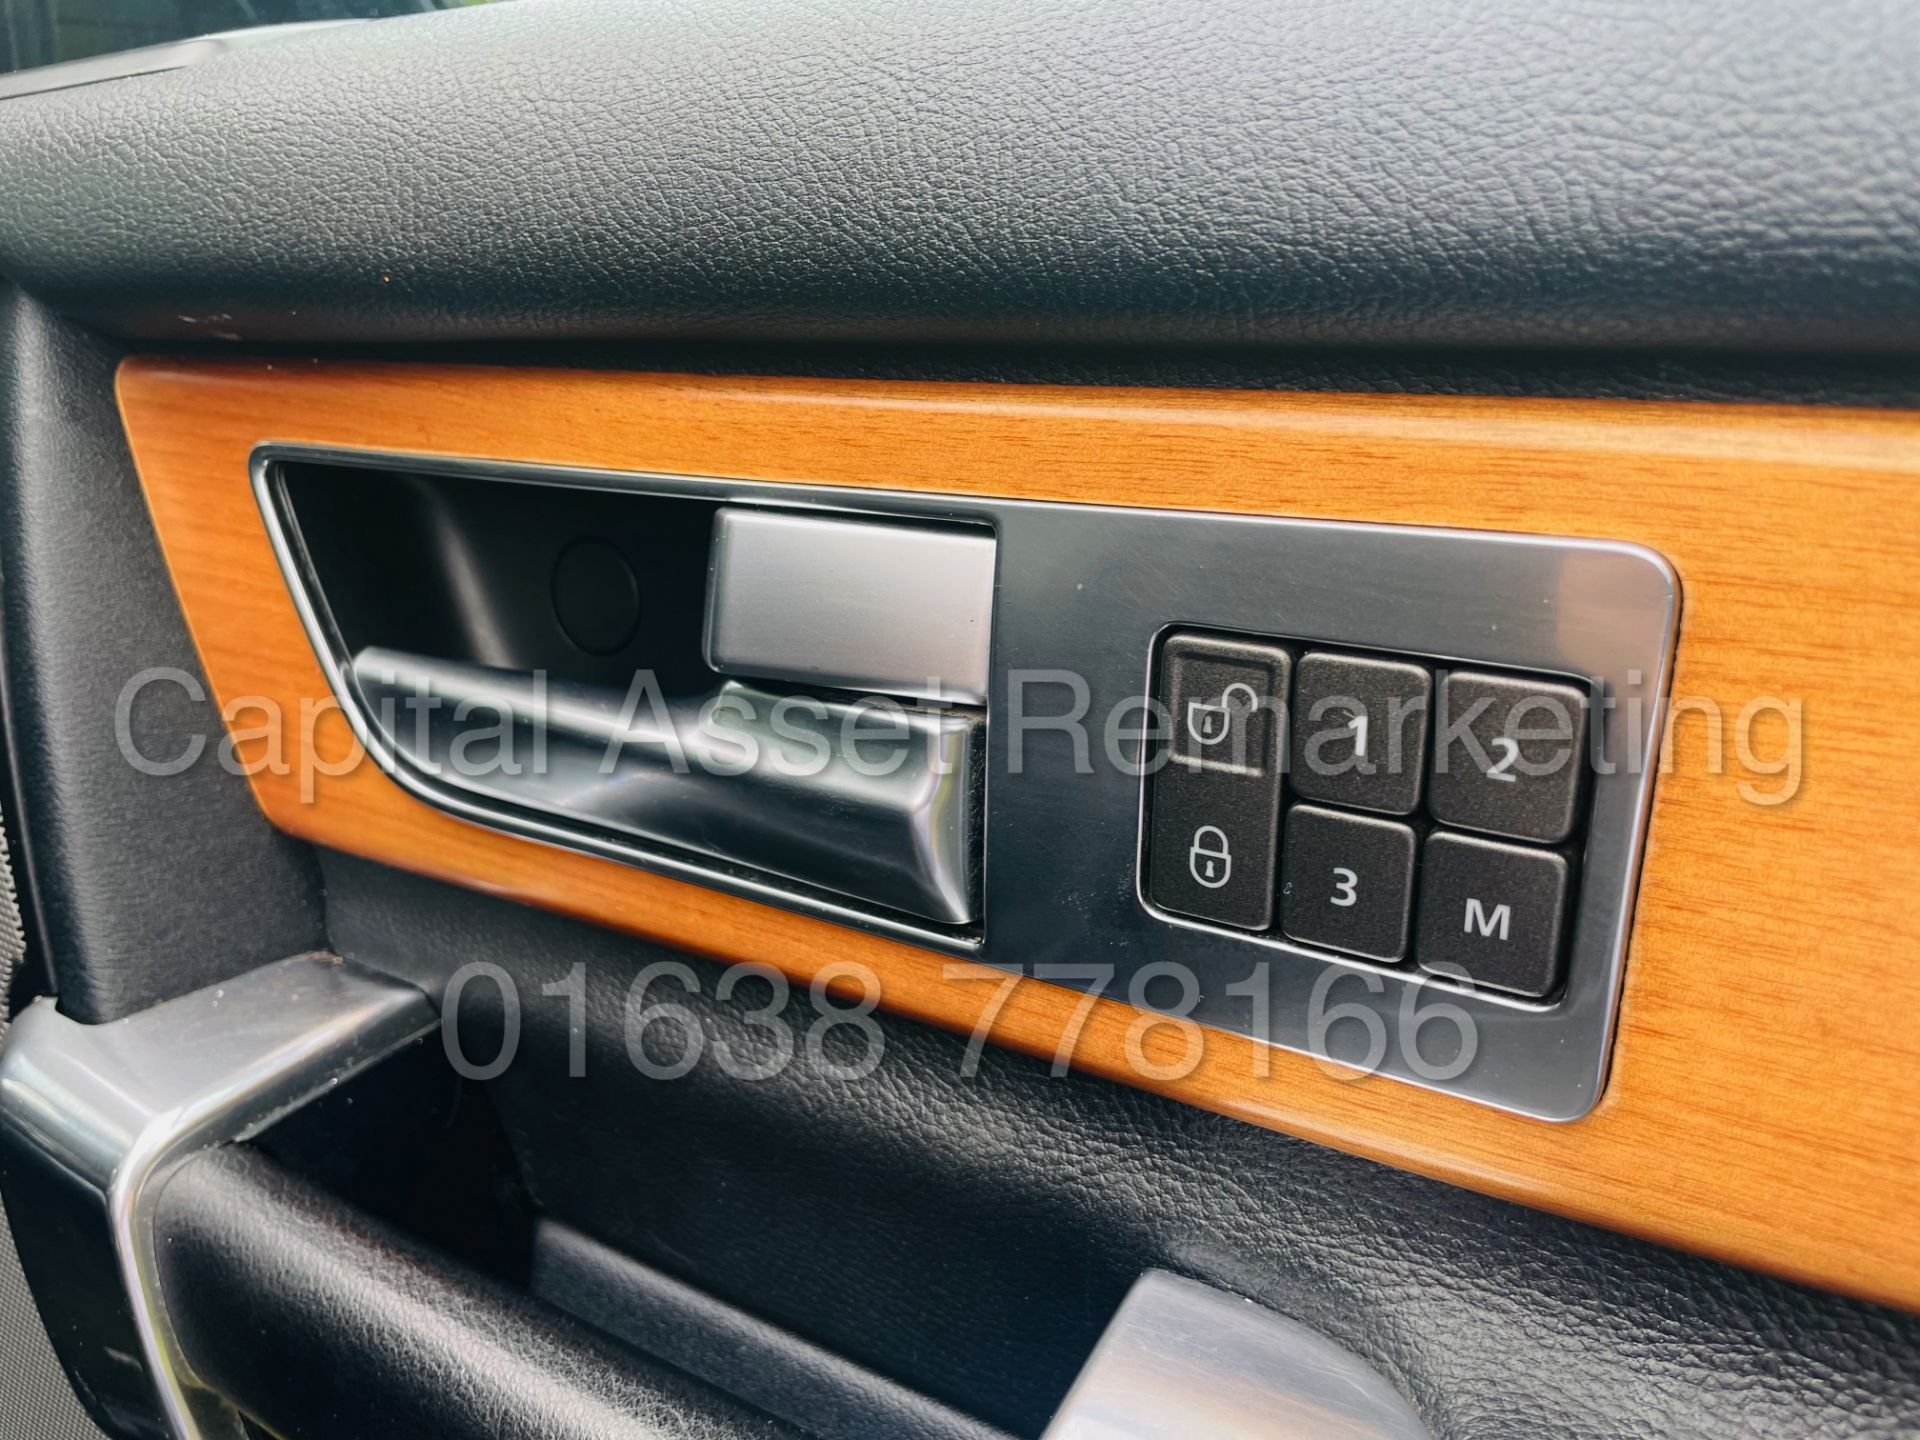 LAND ROVER DISCOVERY 4 *HSE* 7 SEATER SUV (2014 - NEW MODEL) '3.0 SDV6 - 255 BHP - 8 SPEED AUTO' - Image 39 of 61